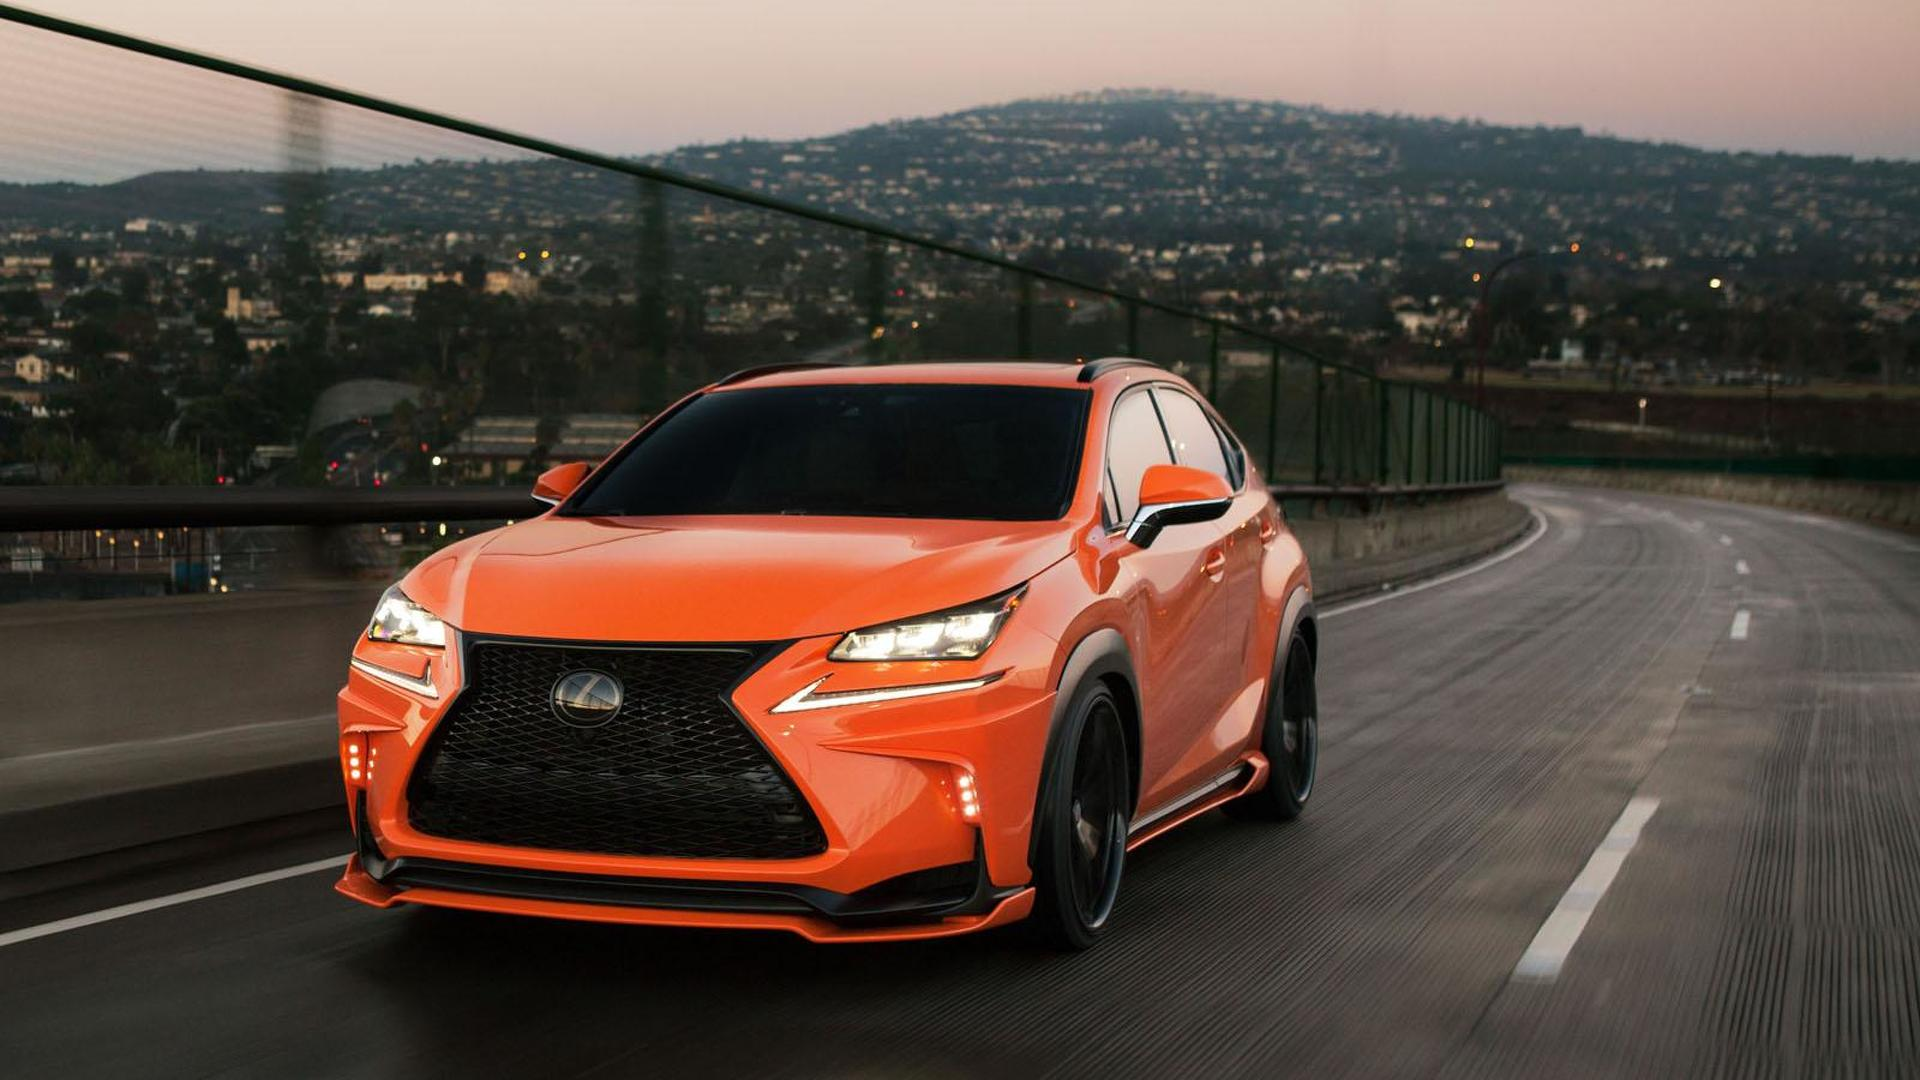 wagons fans of to and trend crossovers here huge automotive are us not nx few in prefer suvs the current we far lexus unlikely or they is between however